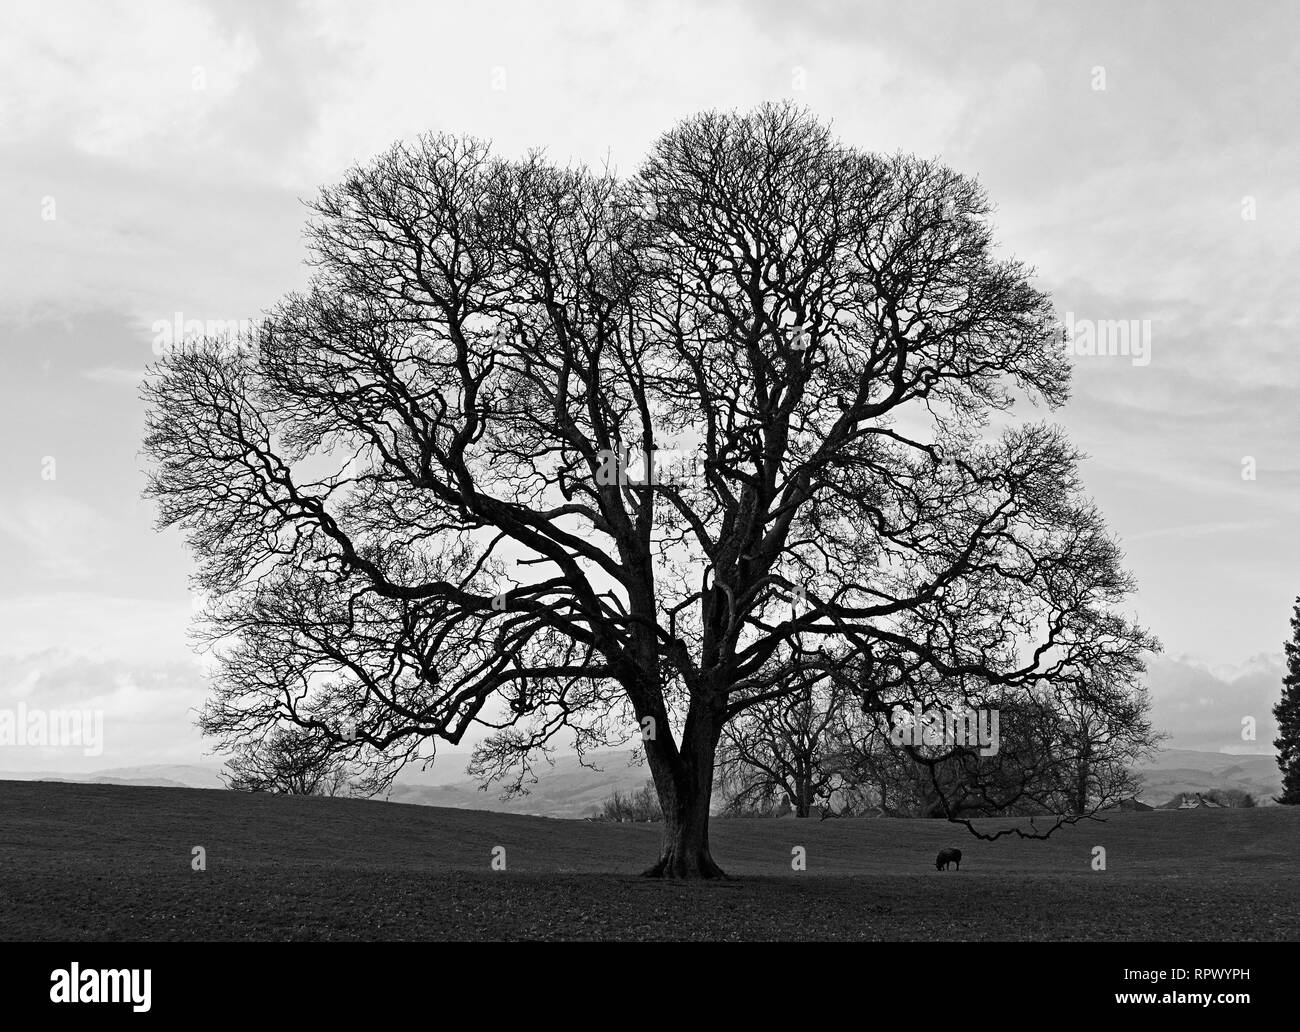 Monochrome image of oak tree in winter with sheep. Castle Green, Kendal, Cumbria, England, United Kingdom, Europe. Stock Photo